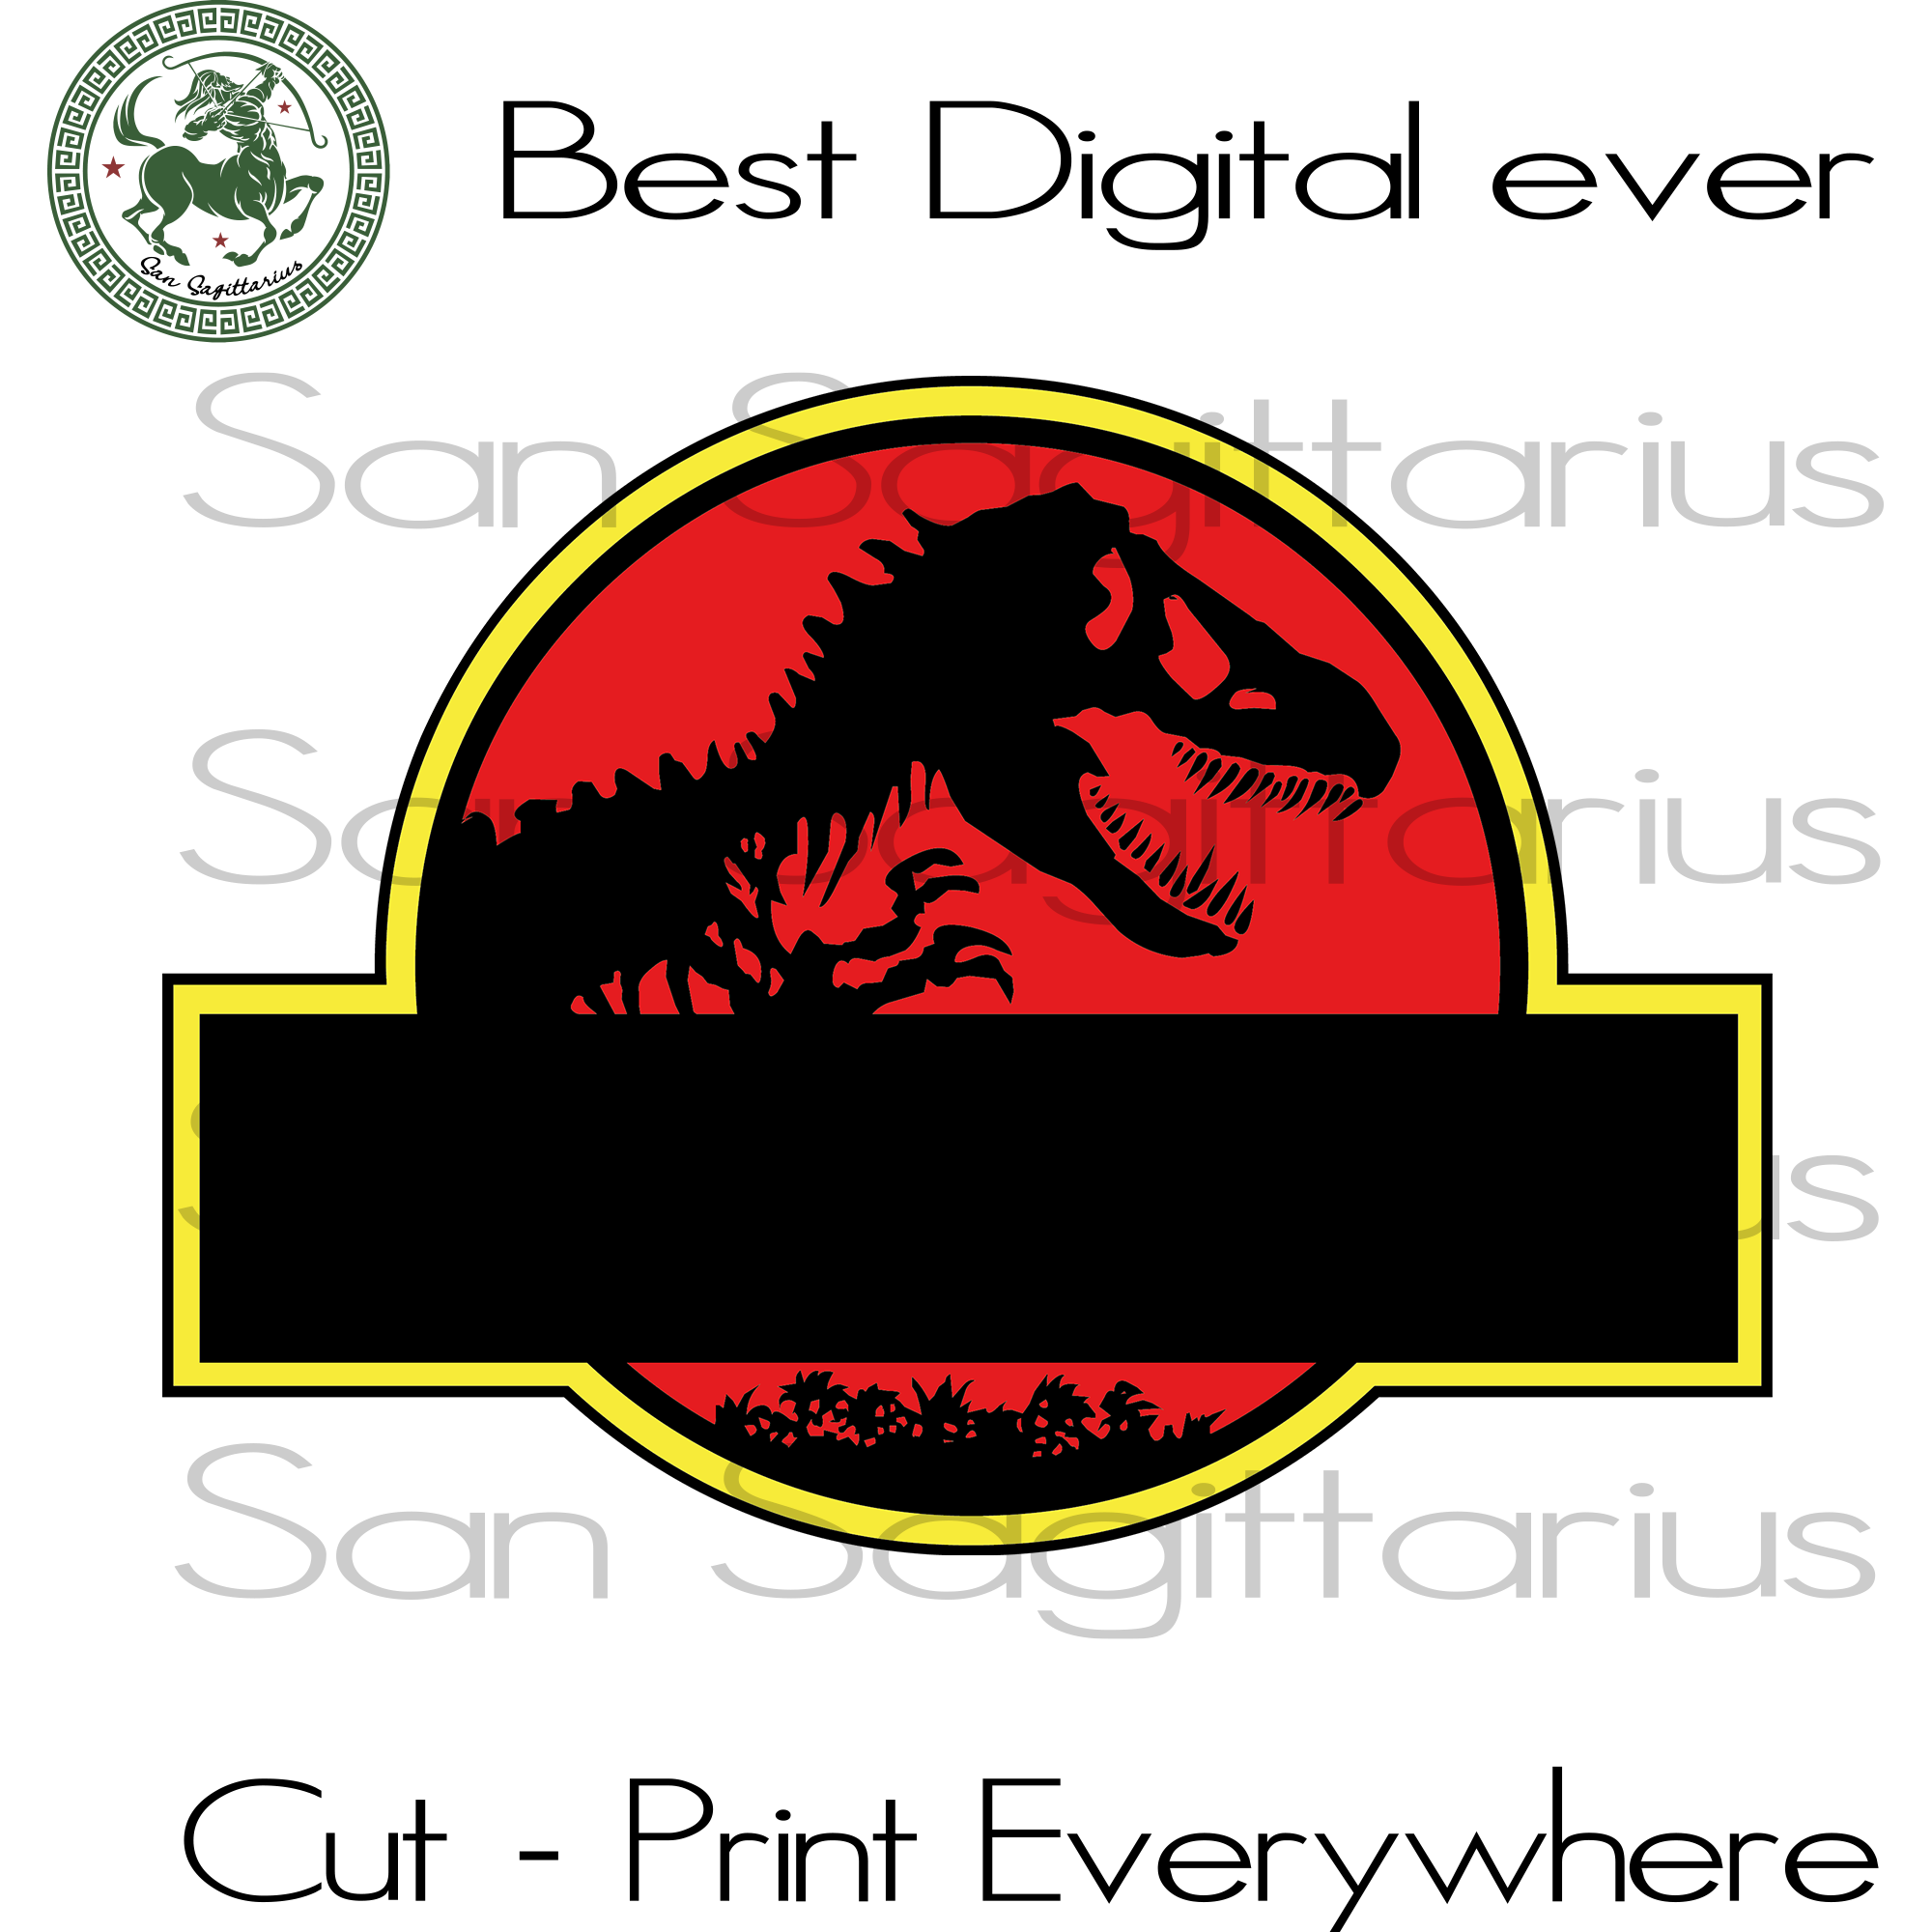 Jurassic Park Customized, Jurassic Park Svg, Jurassic Park, Jurassic World, Jurassic Park Svg, Jurassic, Jurassic Park Party, Jurassic Birthday, Jurassic Park Movie, Jurassic Park Clipart, Di